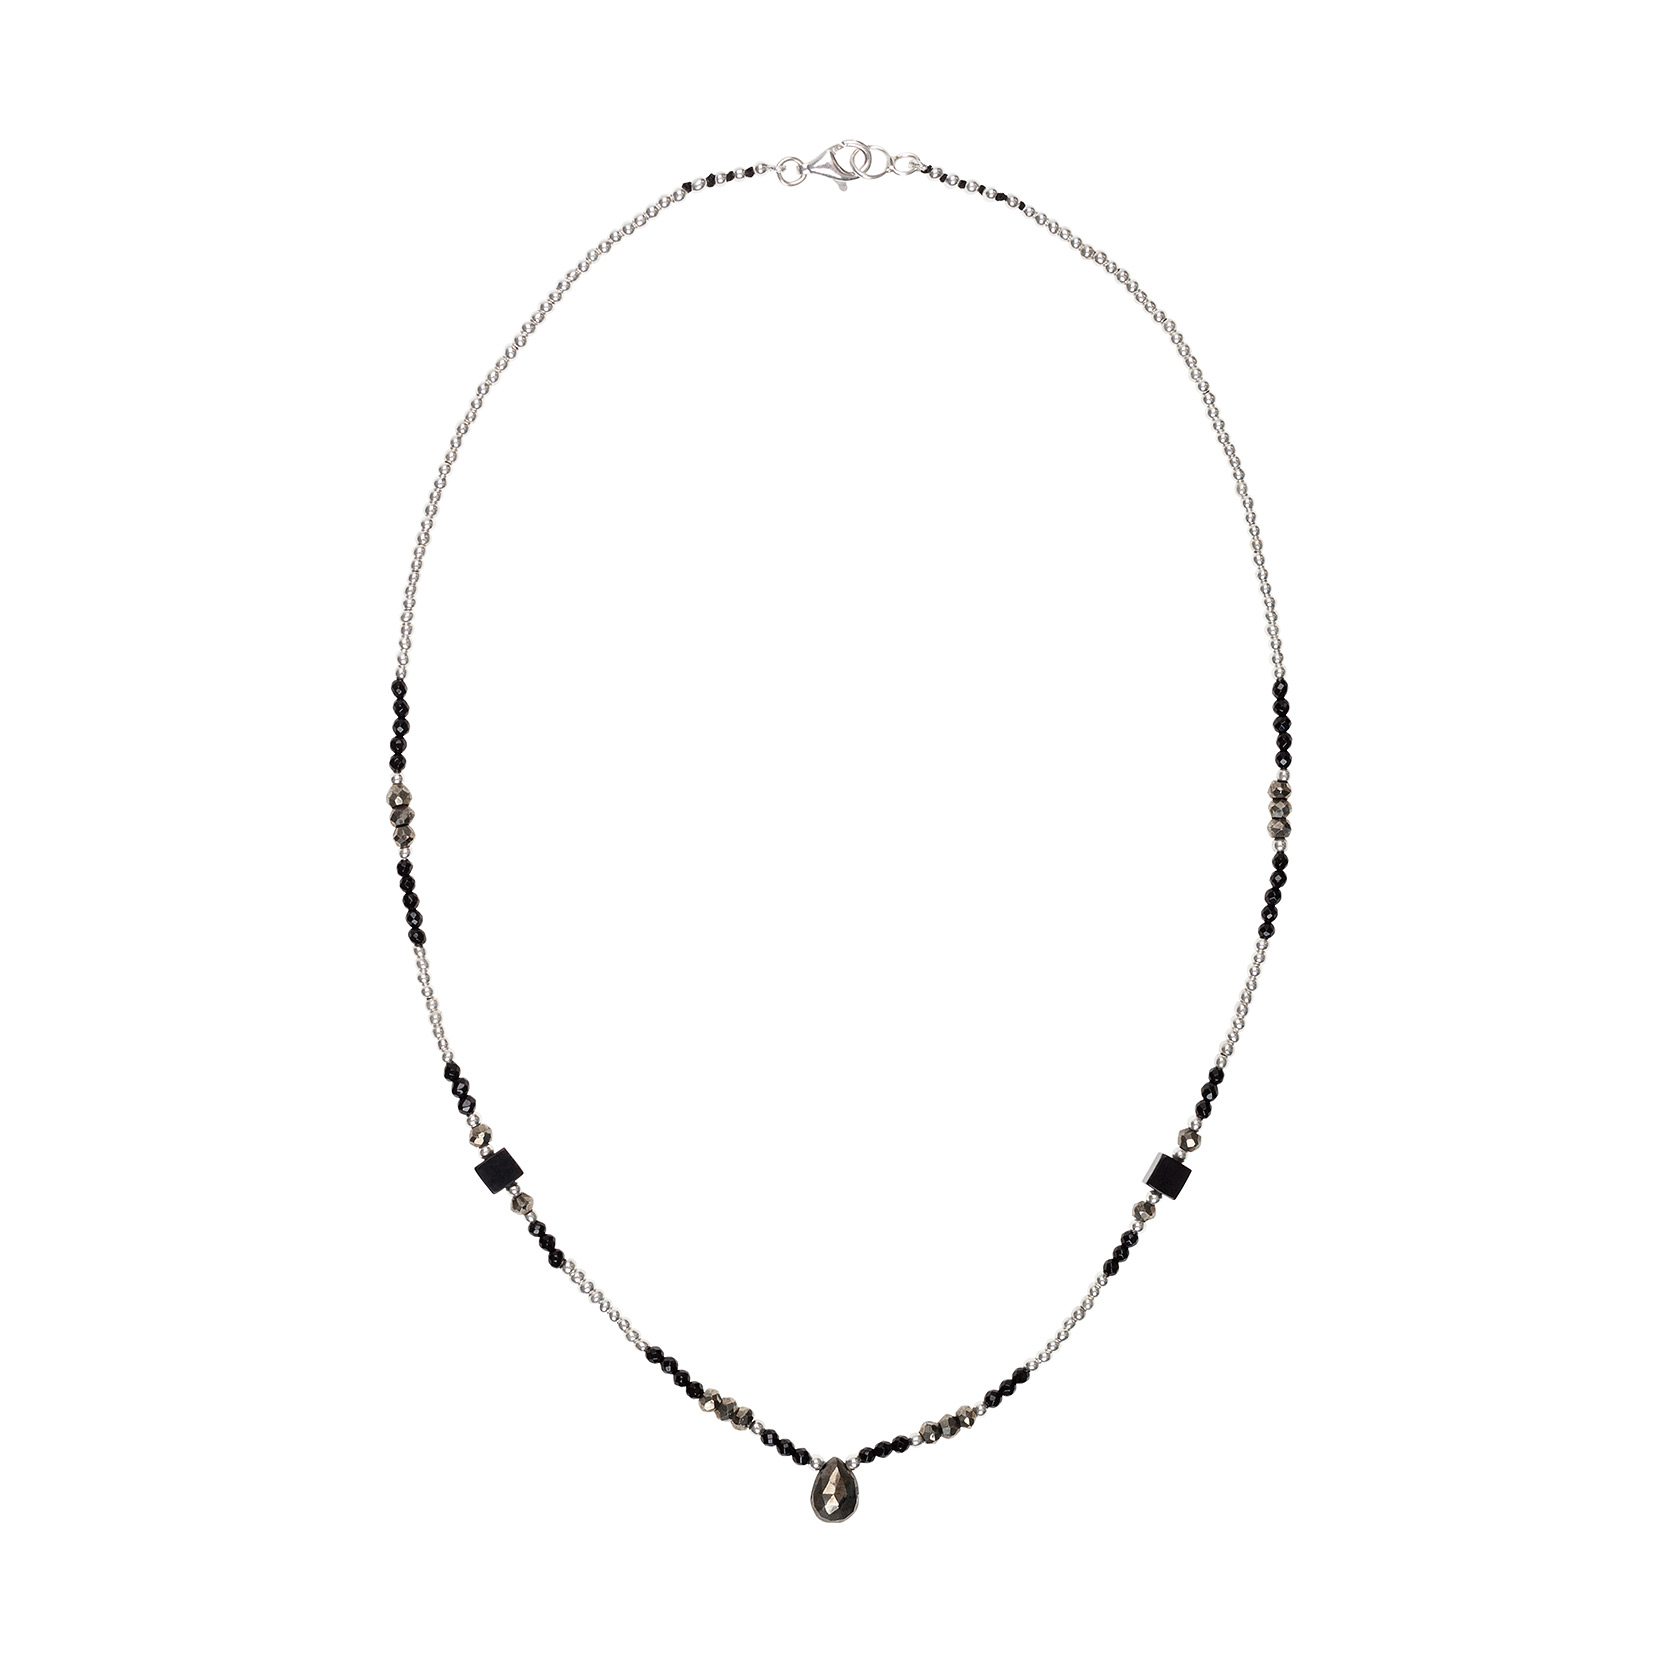 Muscovite and onyx short necklace